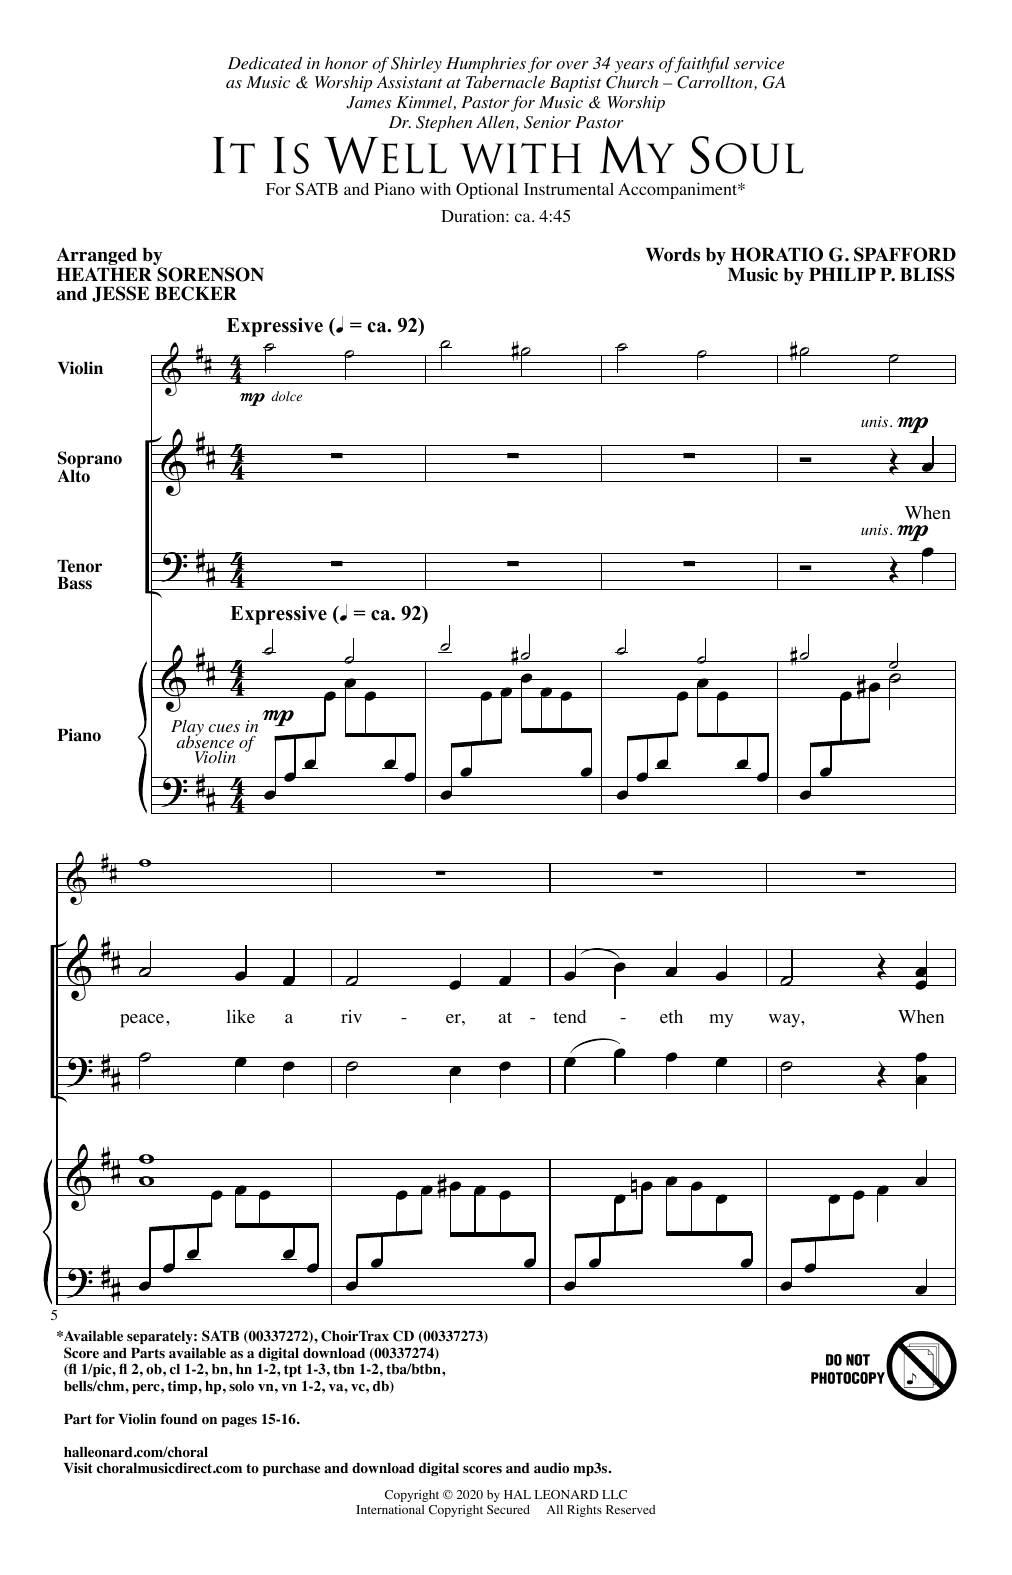 It Is Well With My Soul (arr. Heather Sorenson and Jesse Becker) (SATB Choir)